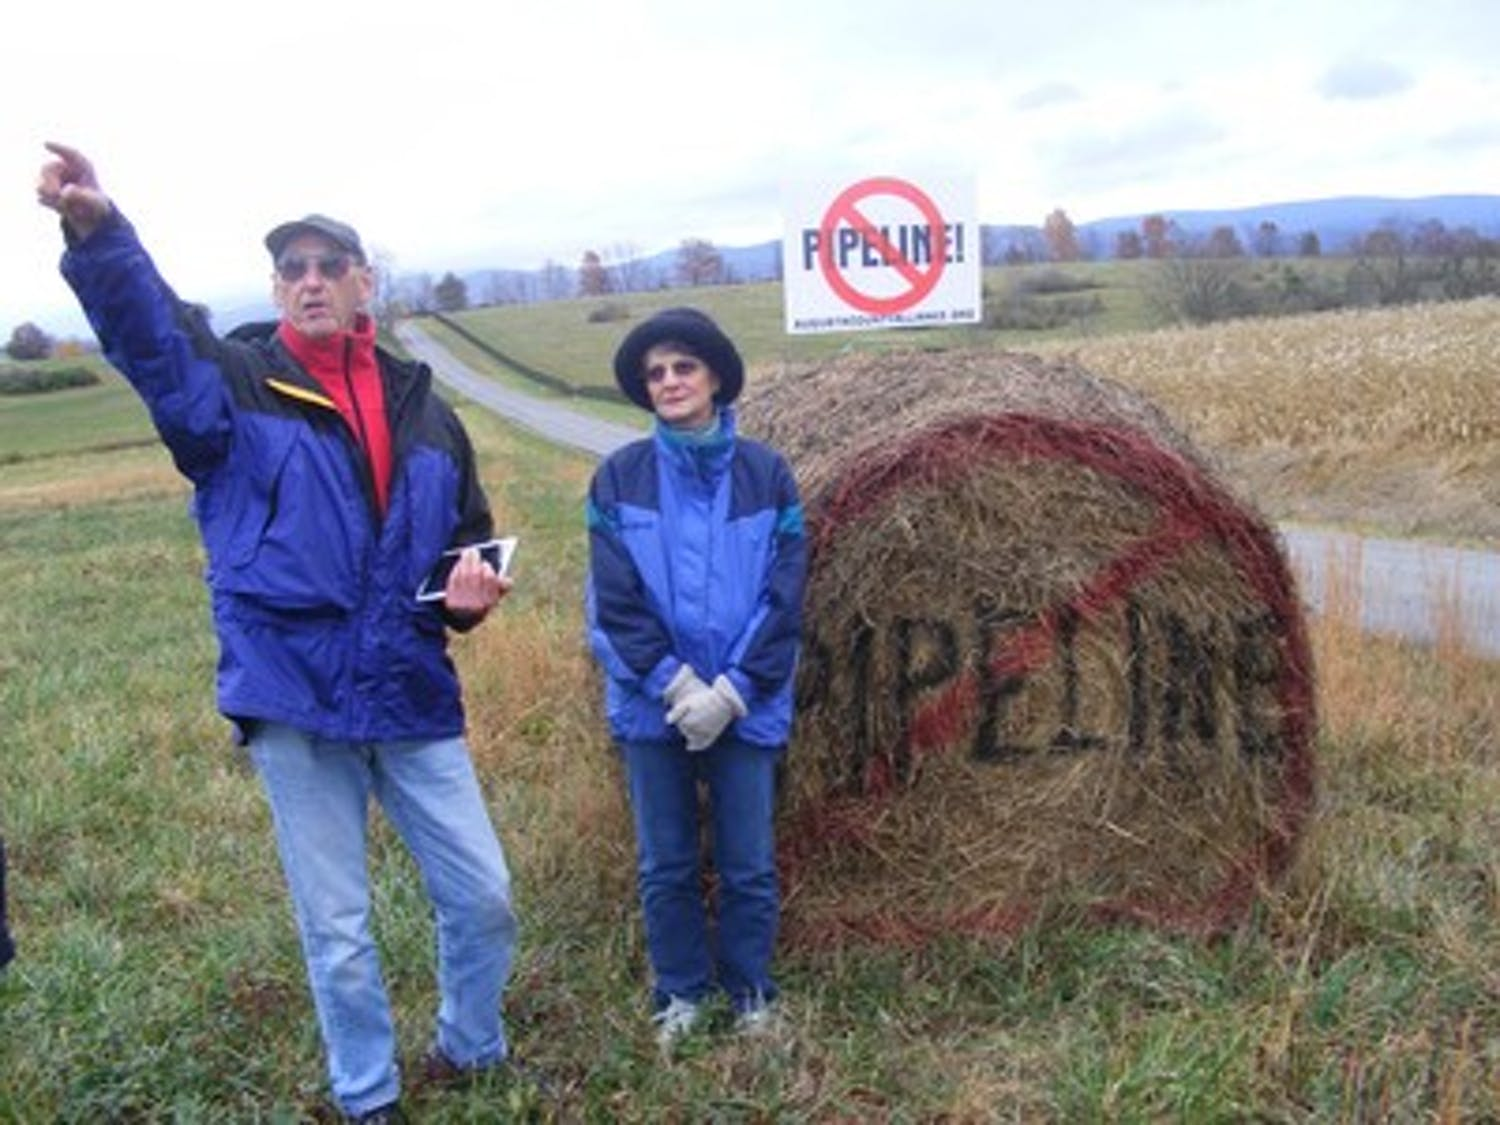 """Fred and Bonnie Powell stand on their Augusta County, Va., farmland that lies on the proposed route of the 550-mile Atlantic Coast Pipeline from West Virginia to eastern North Carolina, on November 1, 2014. The Powells are not allowing Dominion Resources to survey for the right-of-way. """"We re not against pipelines but the location for this is terrible,"""" Fred Powell said. (Sean Cockerham/MCT)"""